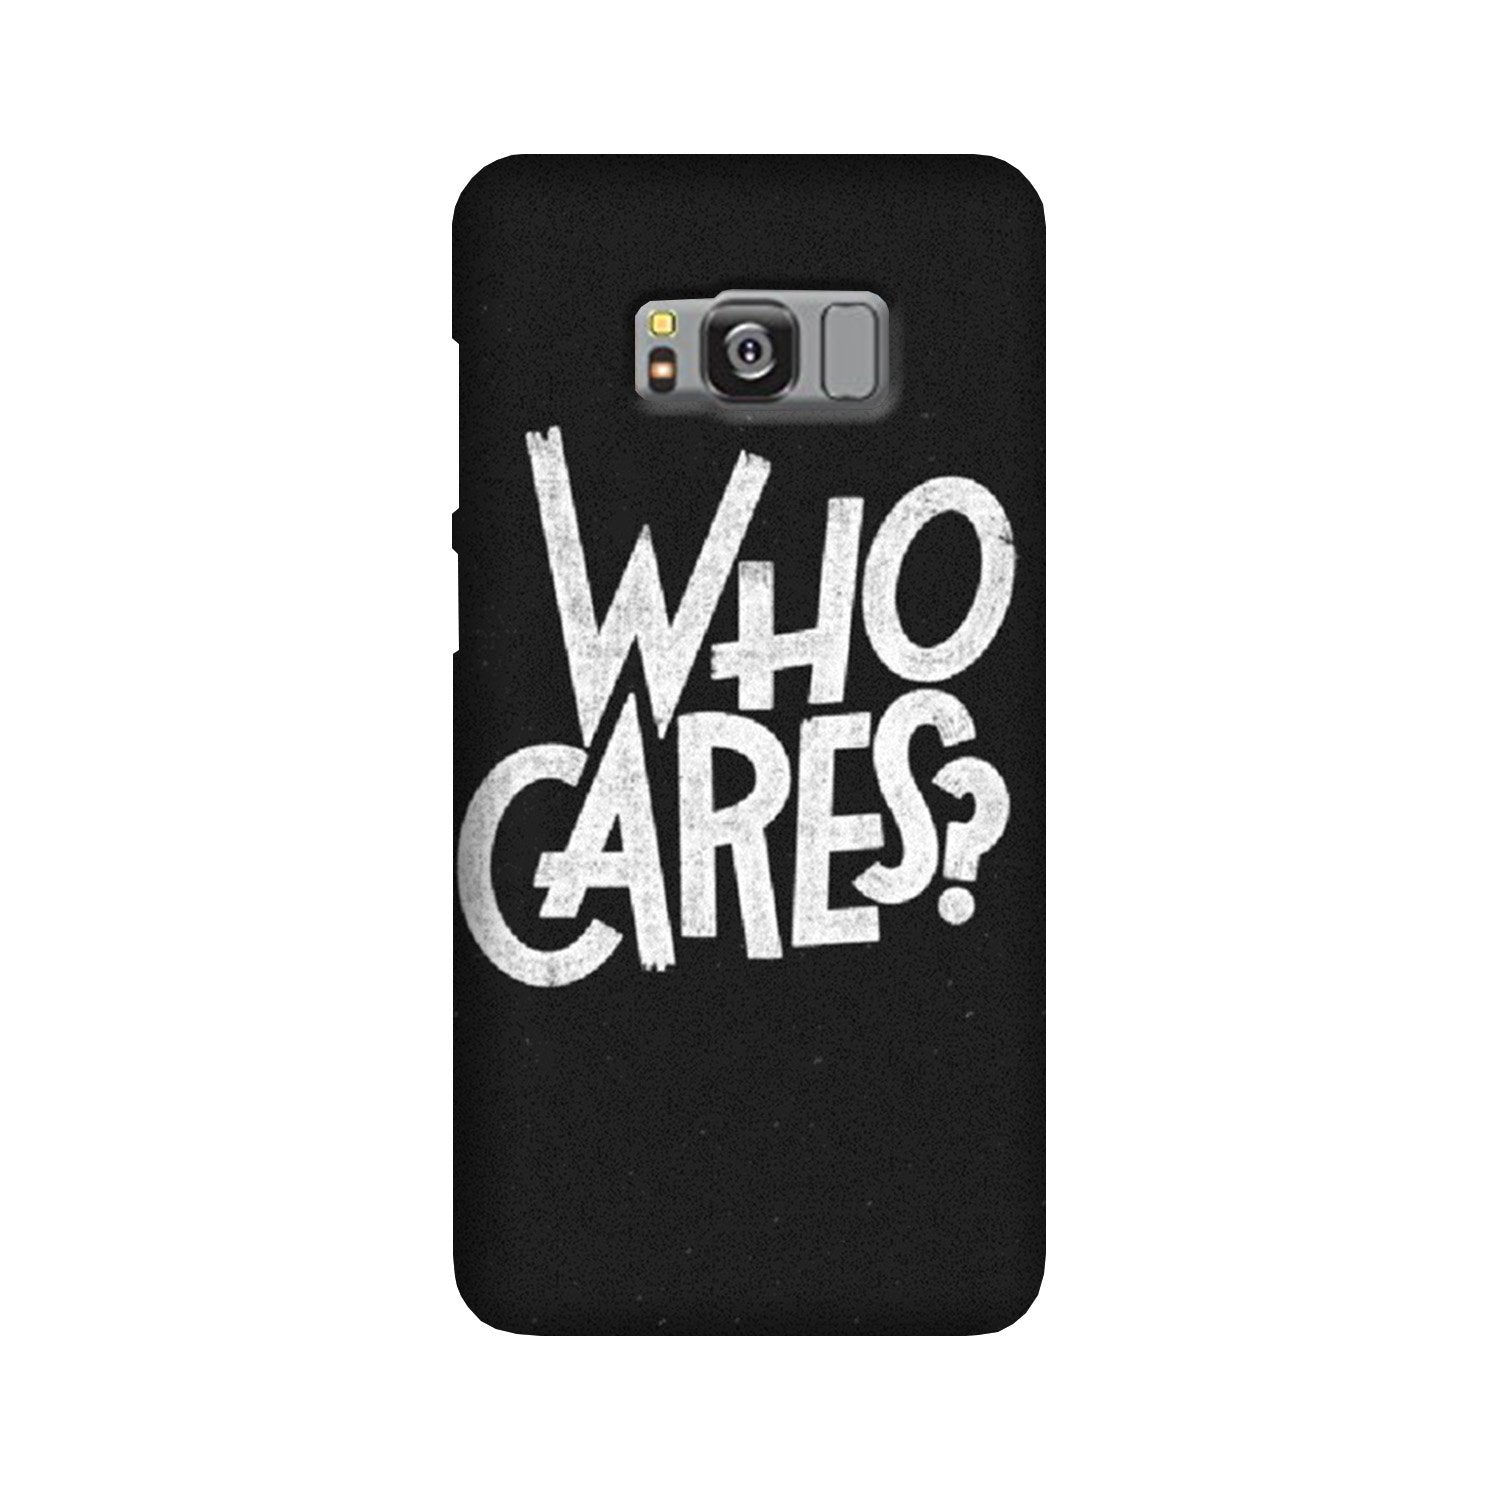 Who Cares Case for Galaxy S8 Plus